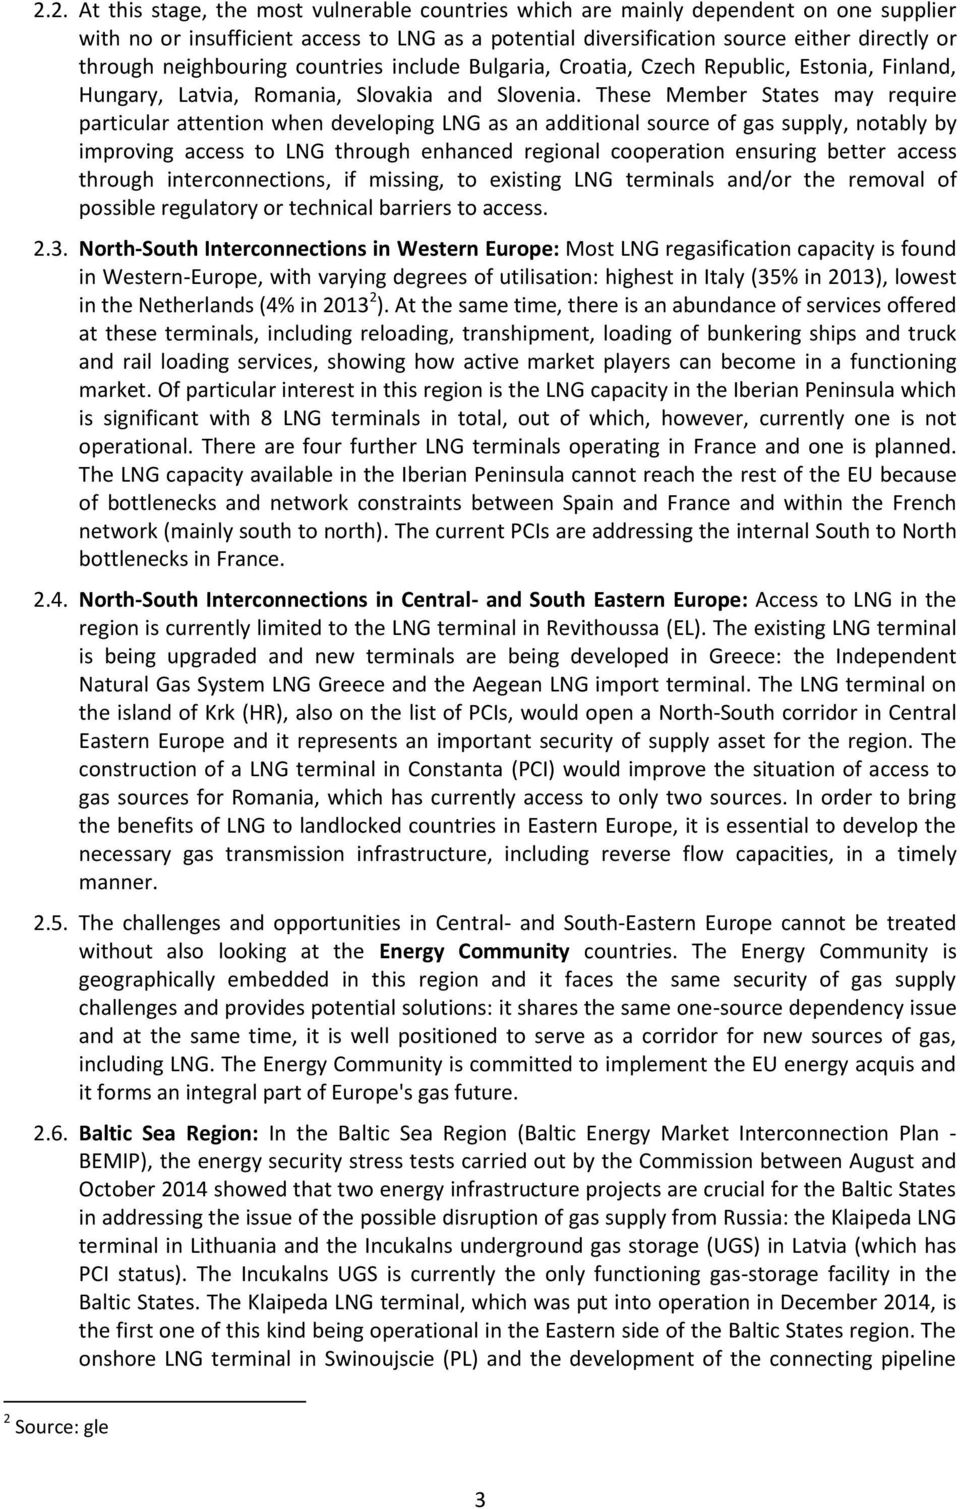 These Member States may require particular attention when developing LNG as an additional source of gas supply, notably by improving access to LNG through enhanced regional cooperation ensuring